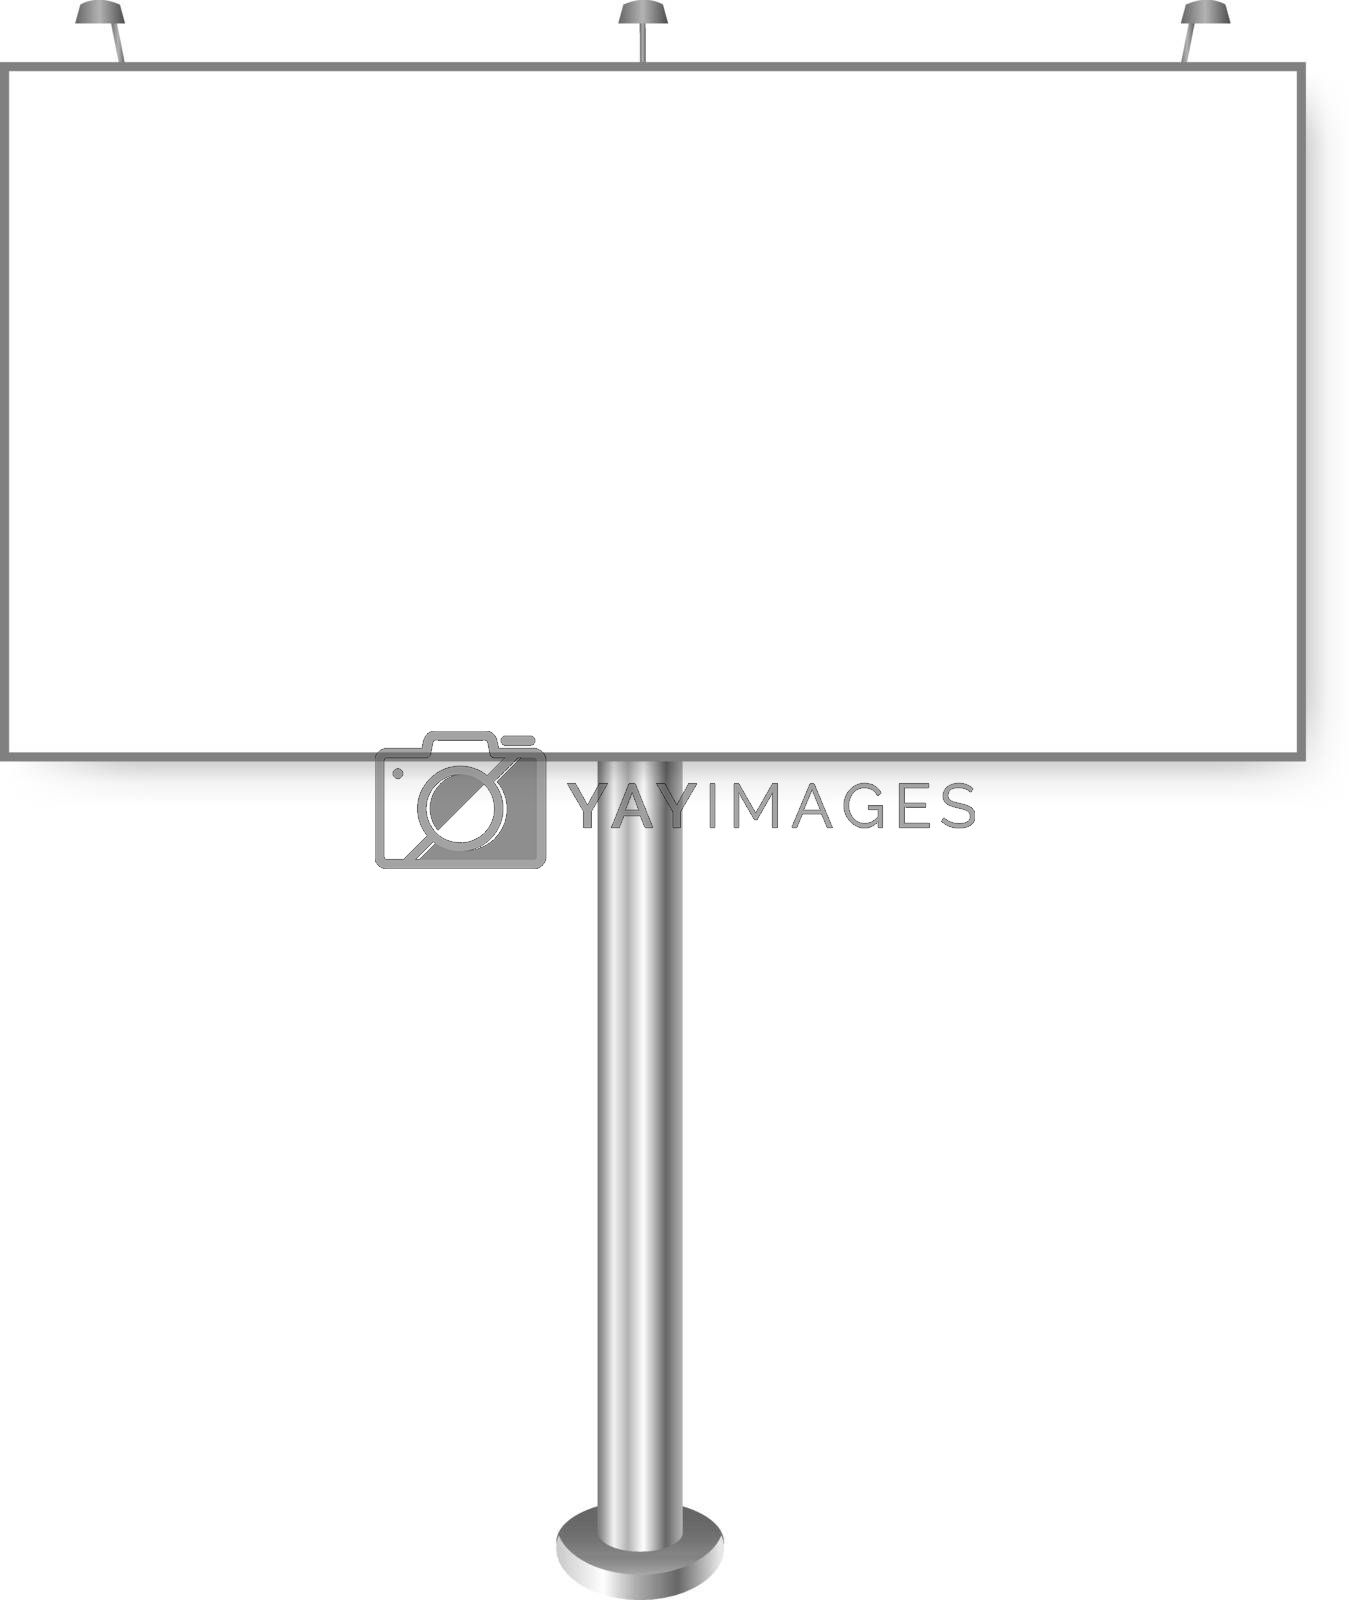 Blank Big Billboard Isolated On White Background by barbaliss